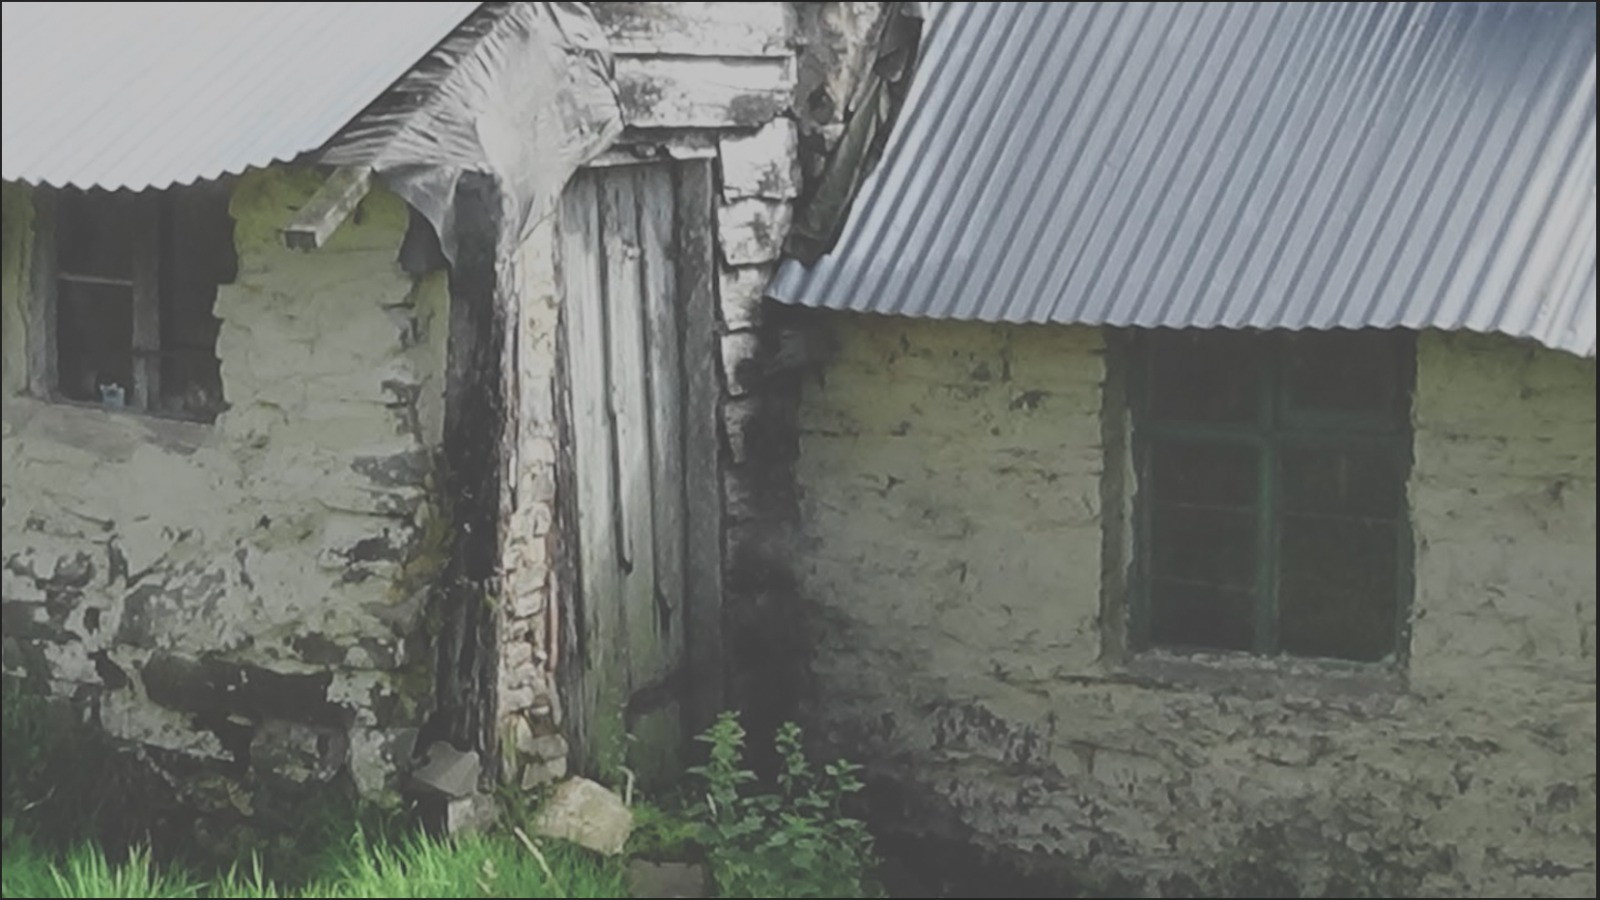 an old building with.a tin roof